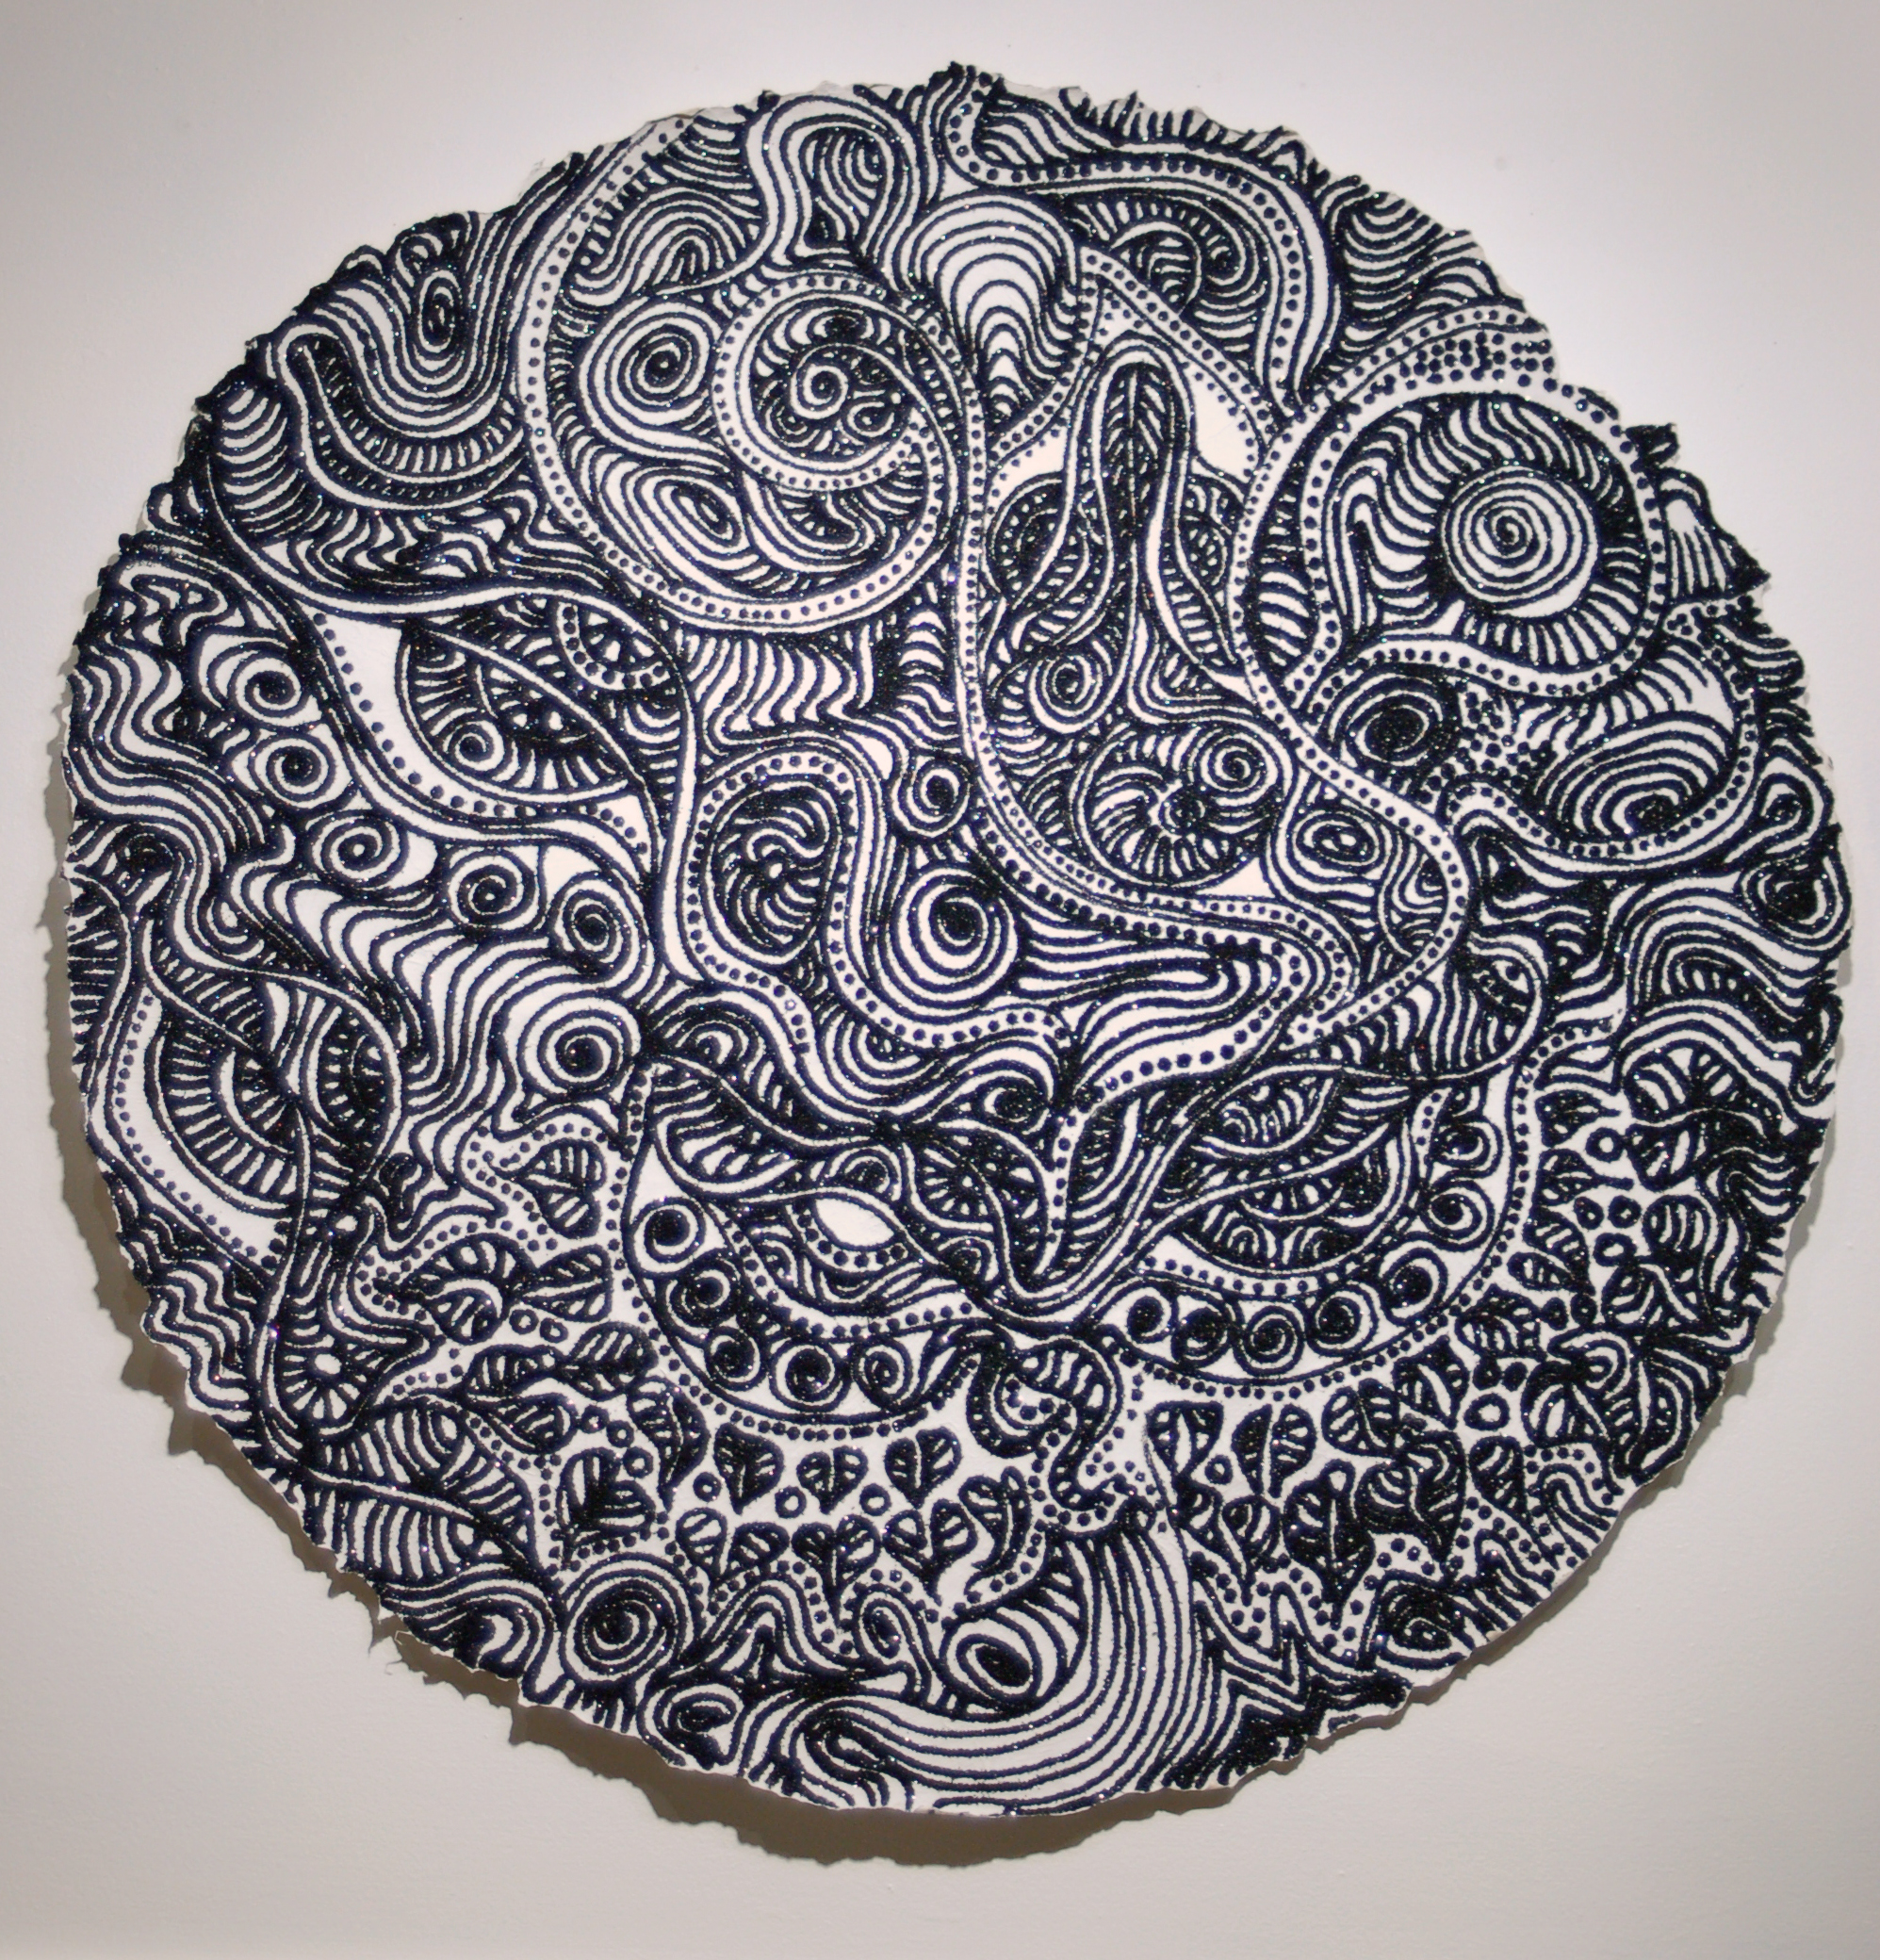 "Christopher Tanner, ""Harvest Moon,"" 2008  mixed media on paper  39 1/2"" diameter"